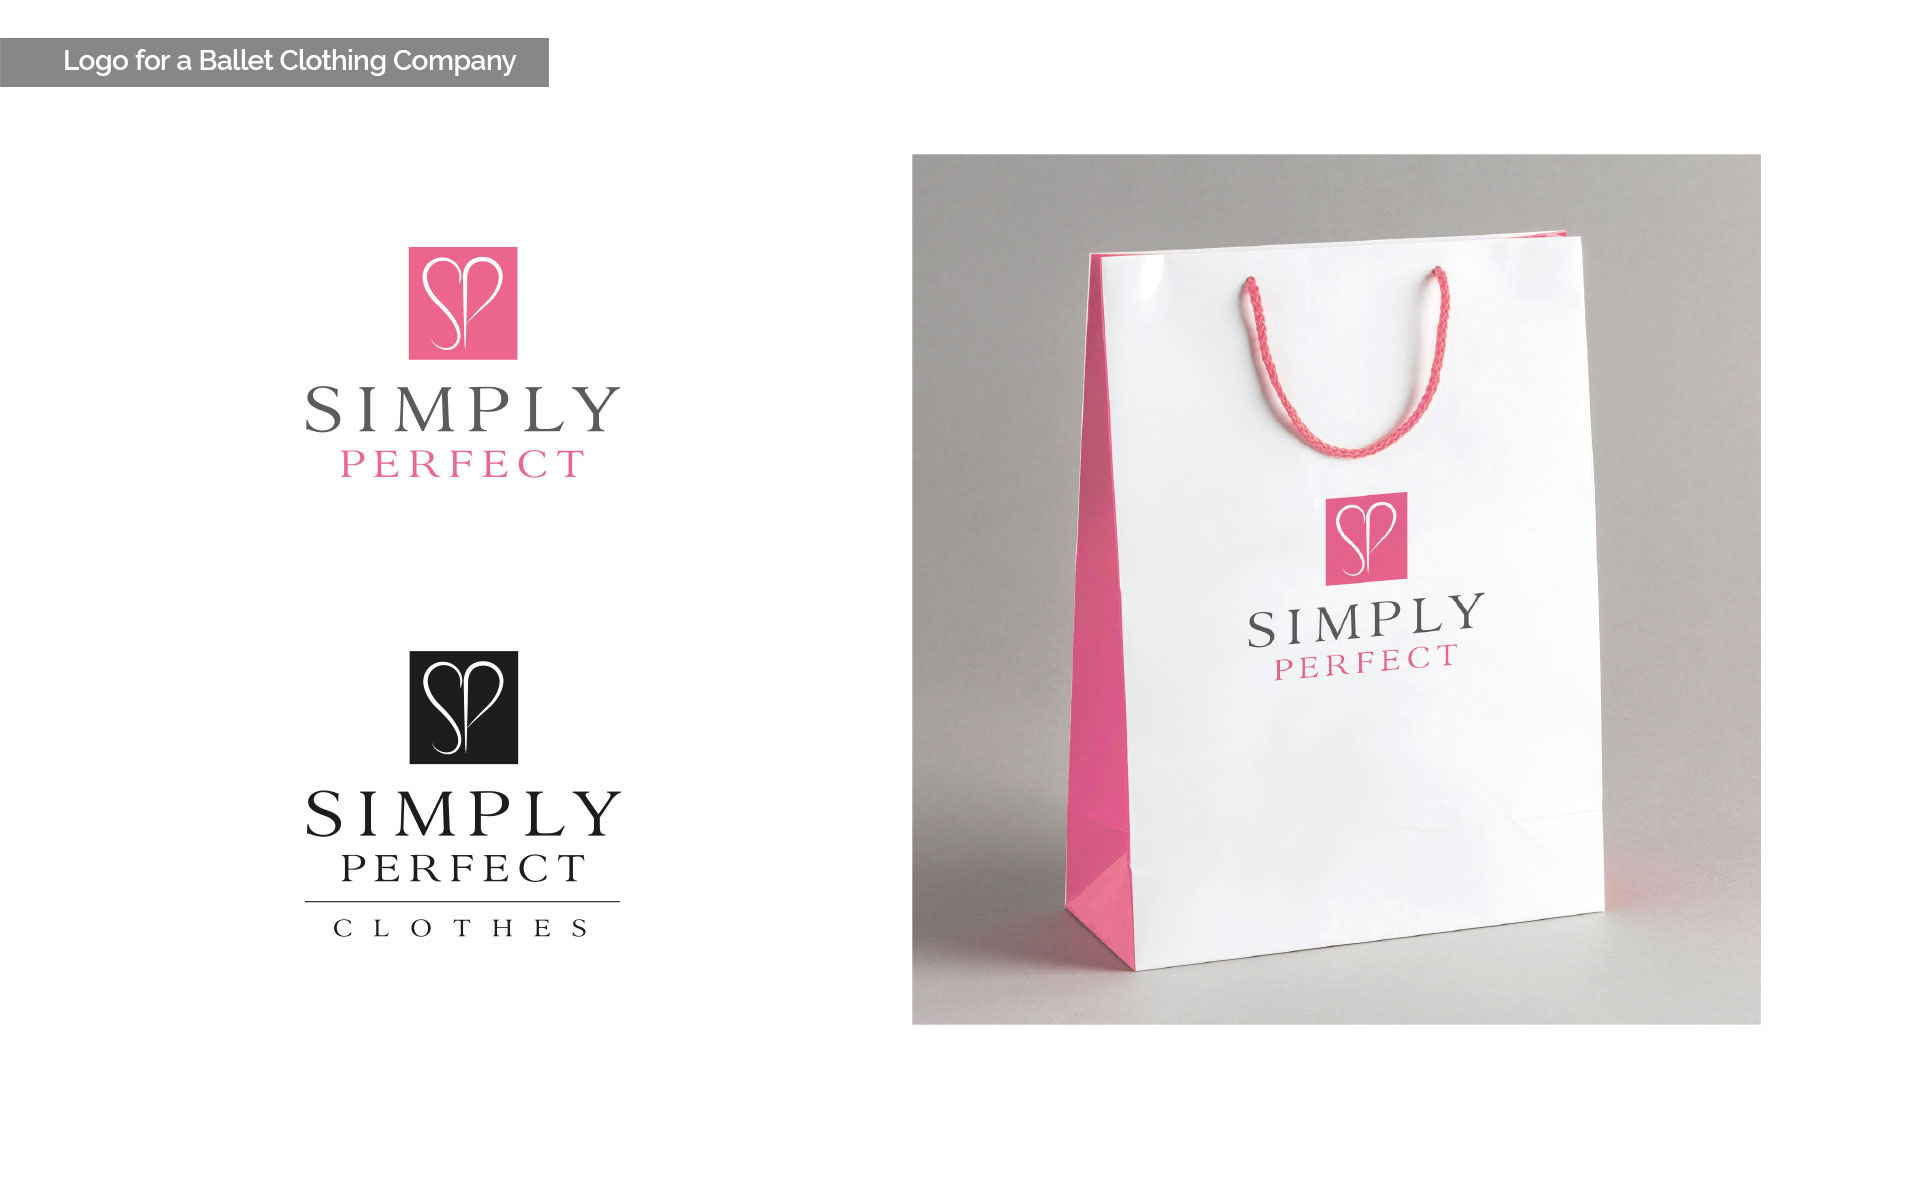 Simply-perfect-logo-design